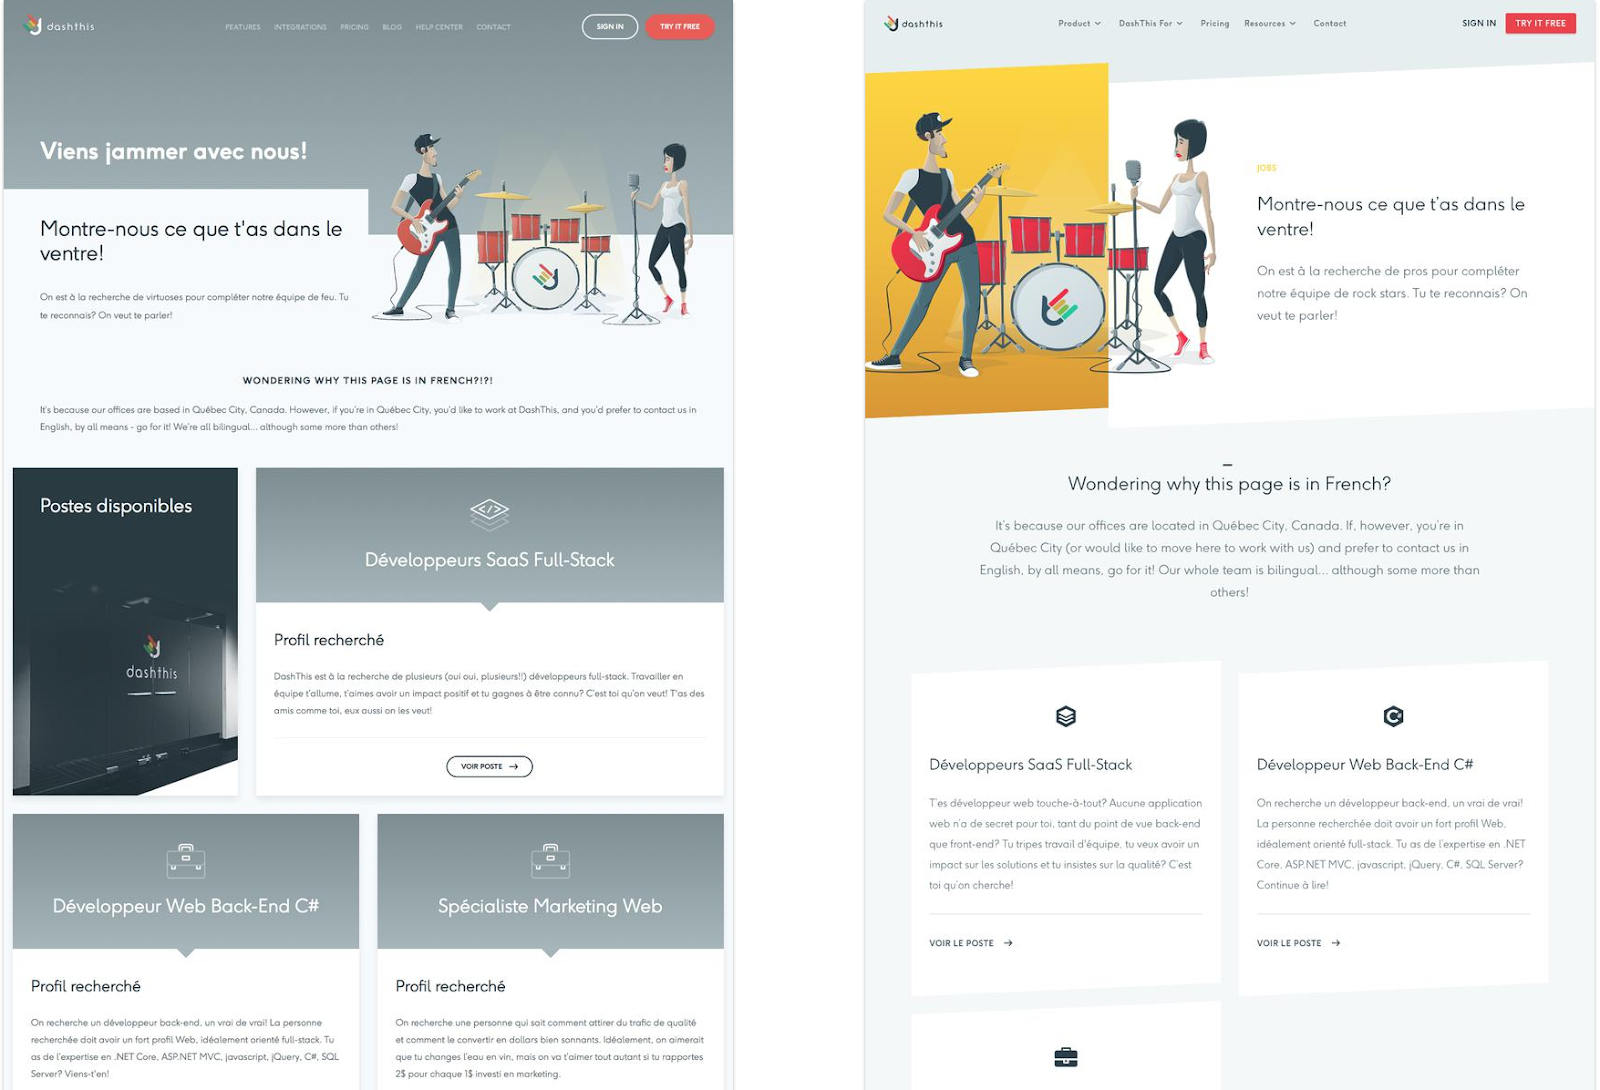 8 examples of hiring pages that highlight culture first